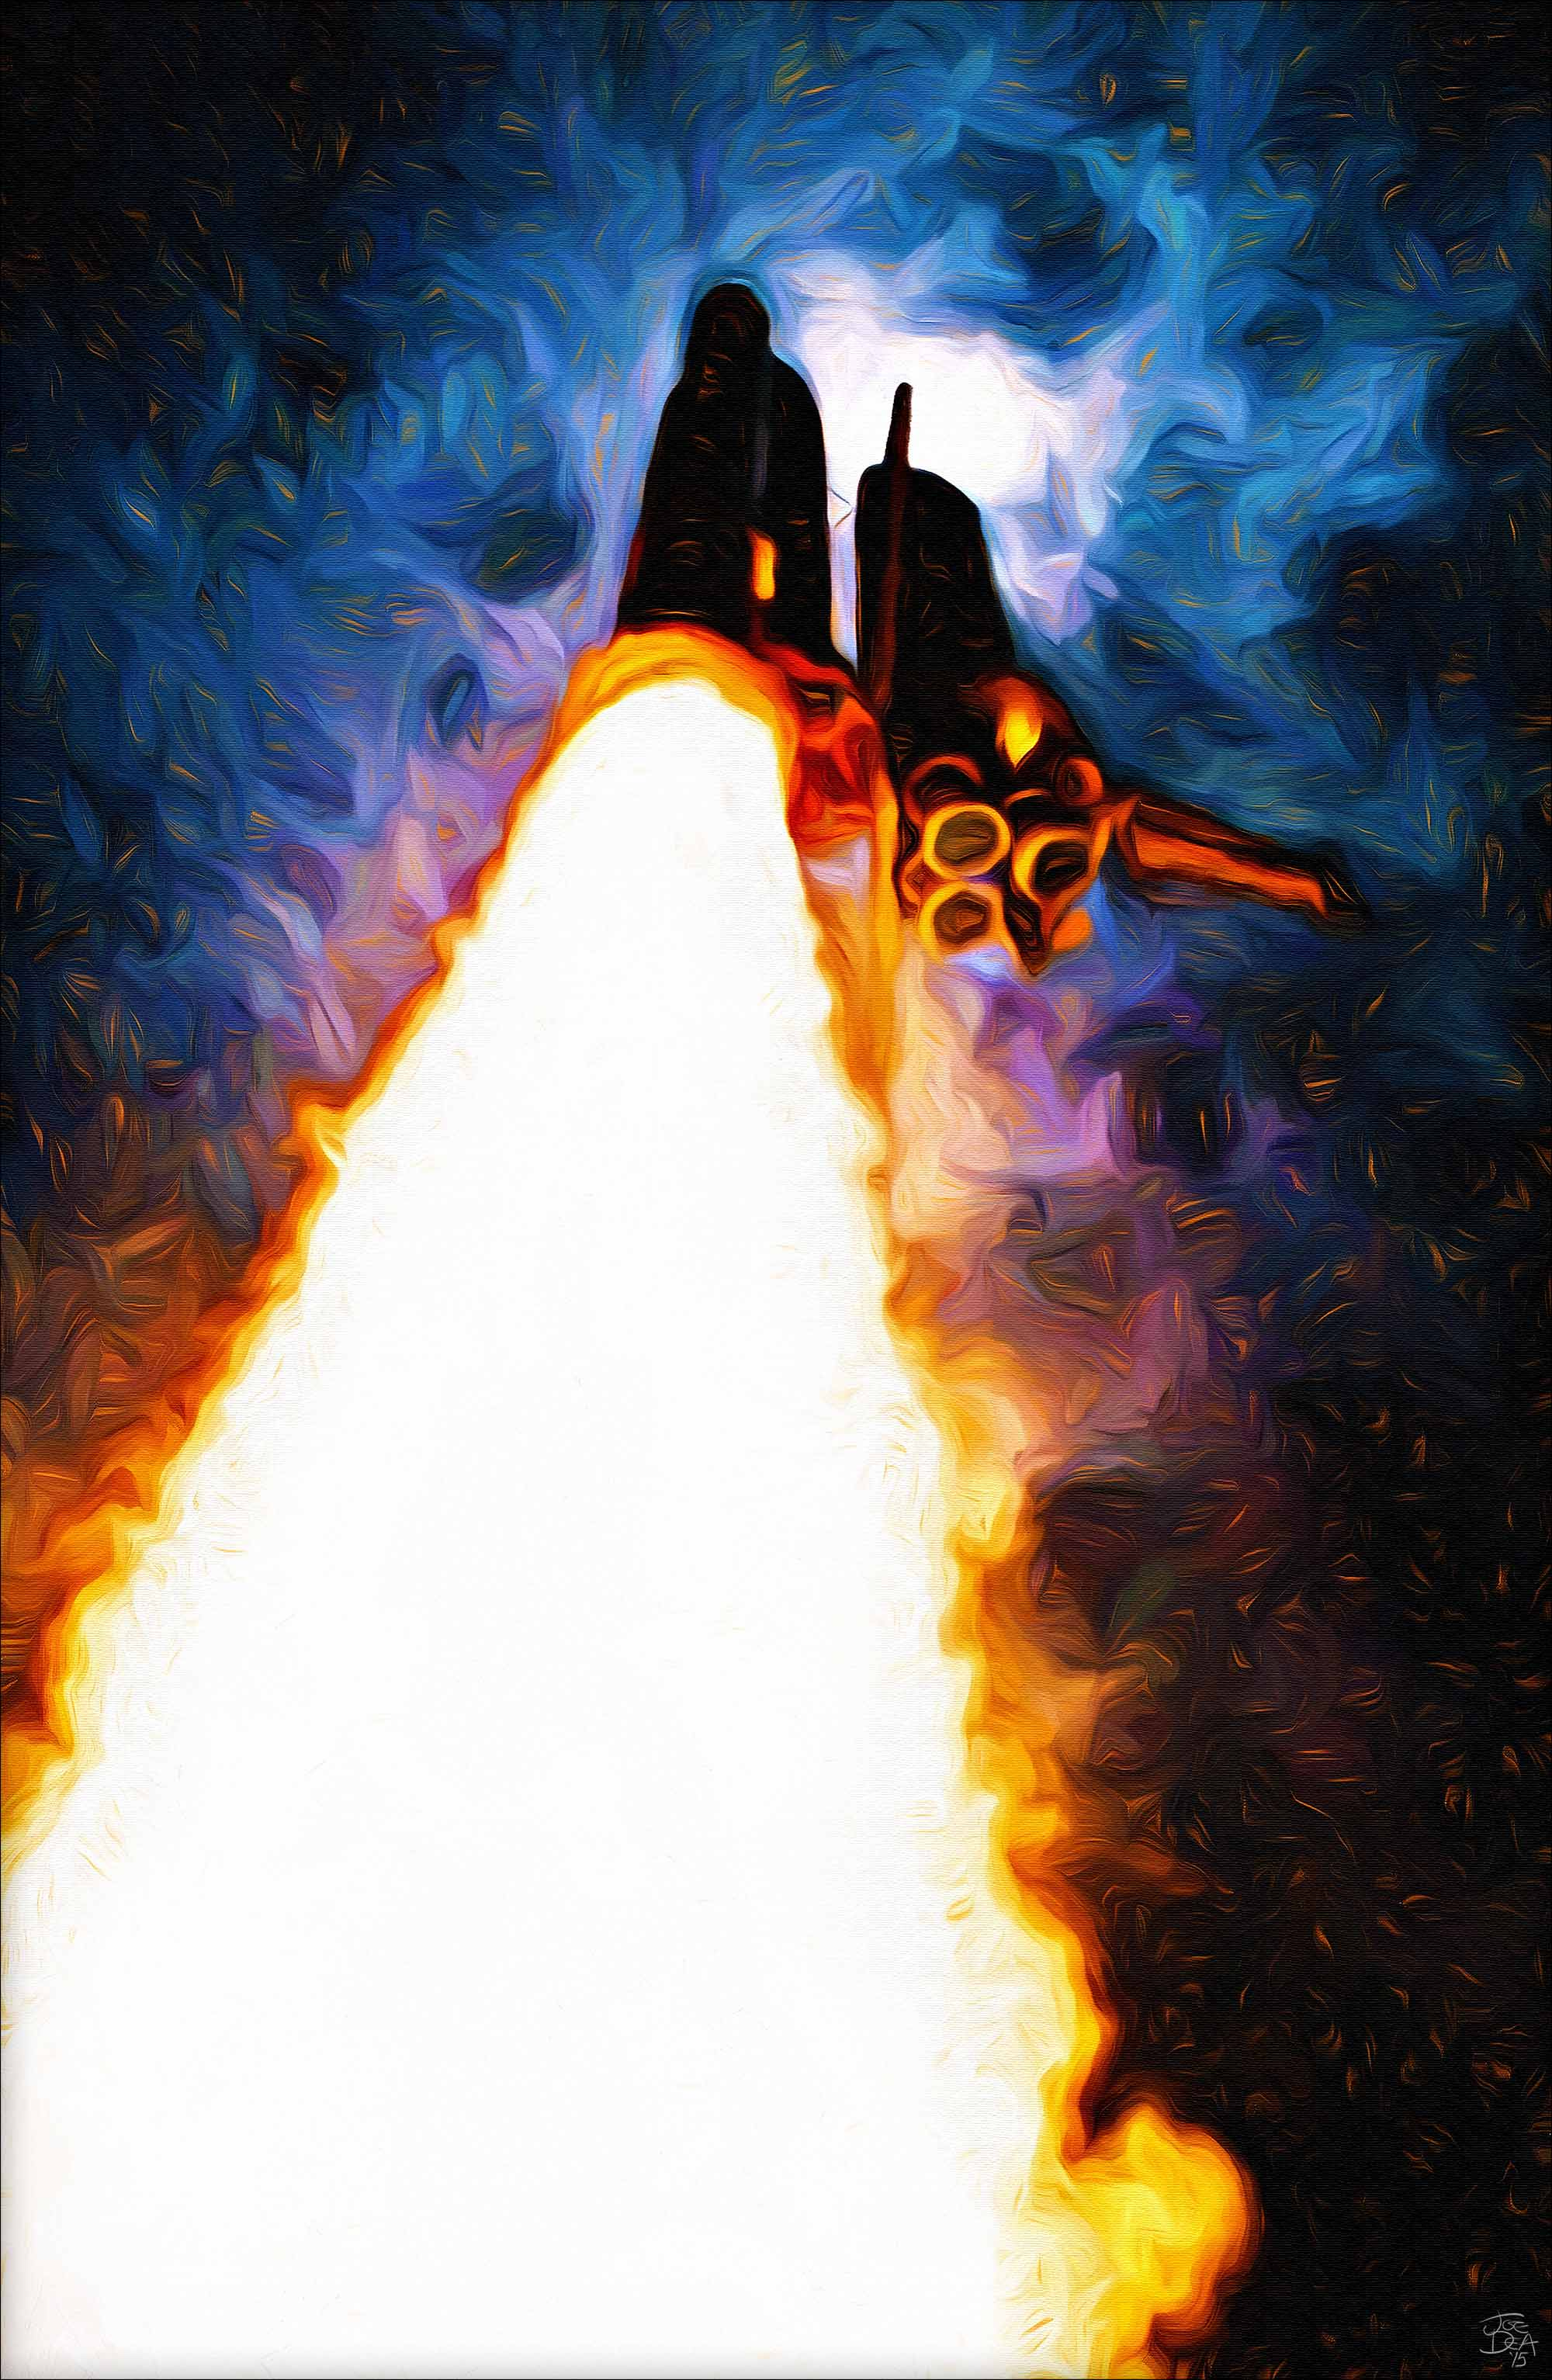 Joe-Dea-NASA-Shuttle-Launch-A-Painting-LB.jpg